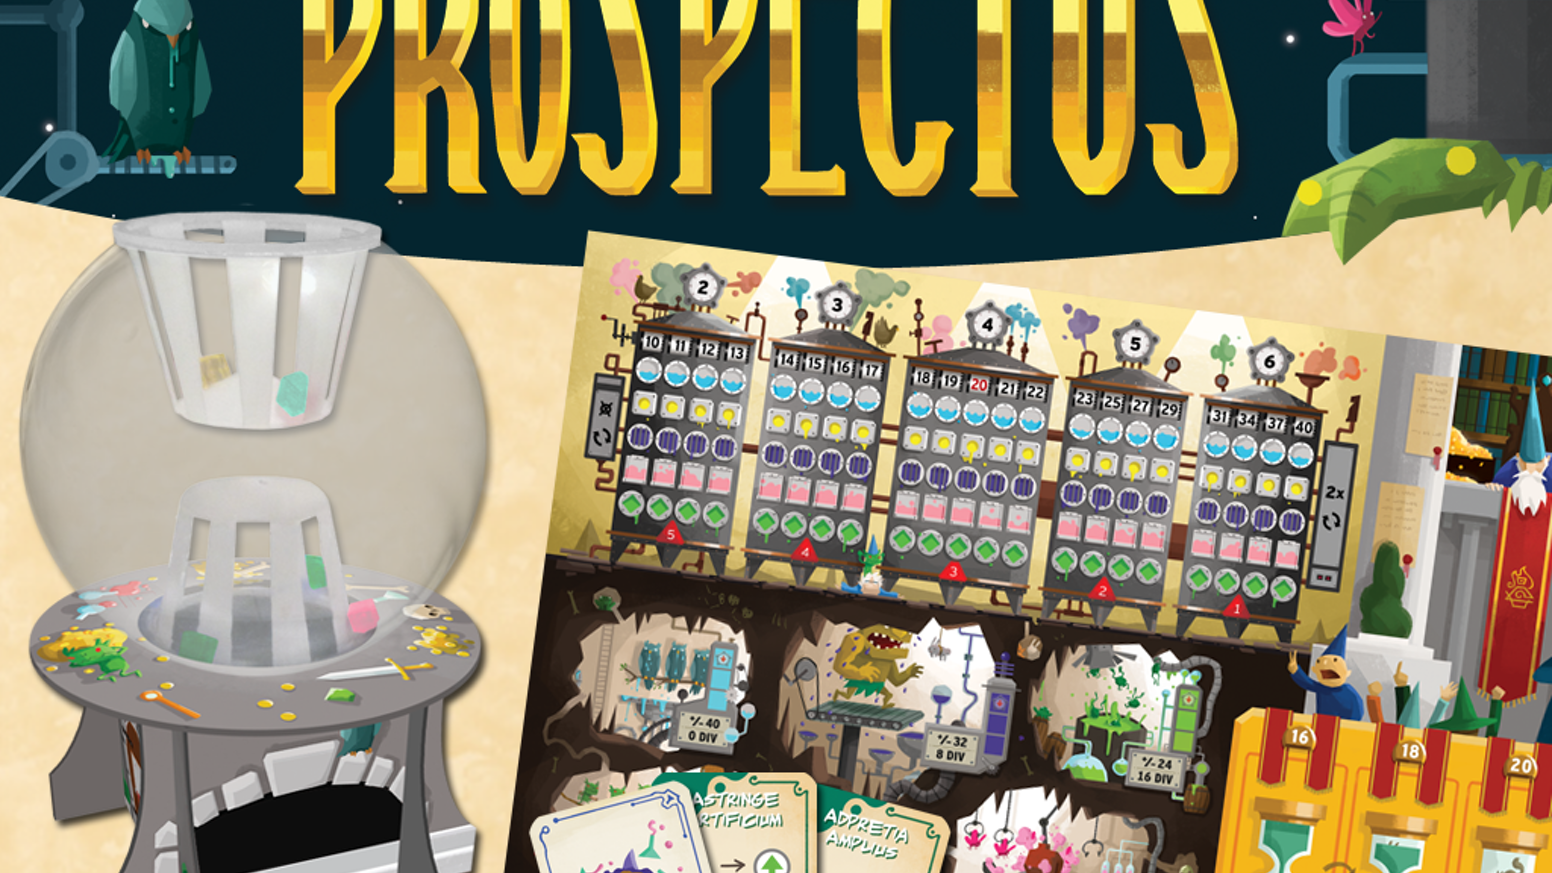 Prospectus By Mr B Games Kickstarter Mrb Crystal Make Up Base Trade Ingredients And Cast Spells In The Underground Potion Market On Your Way To